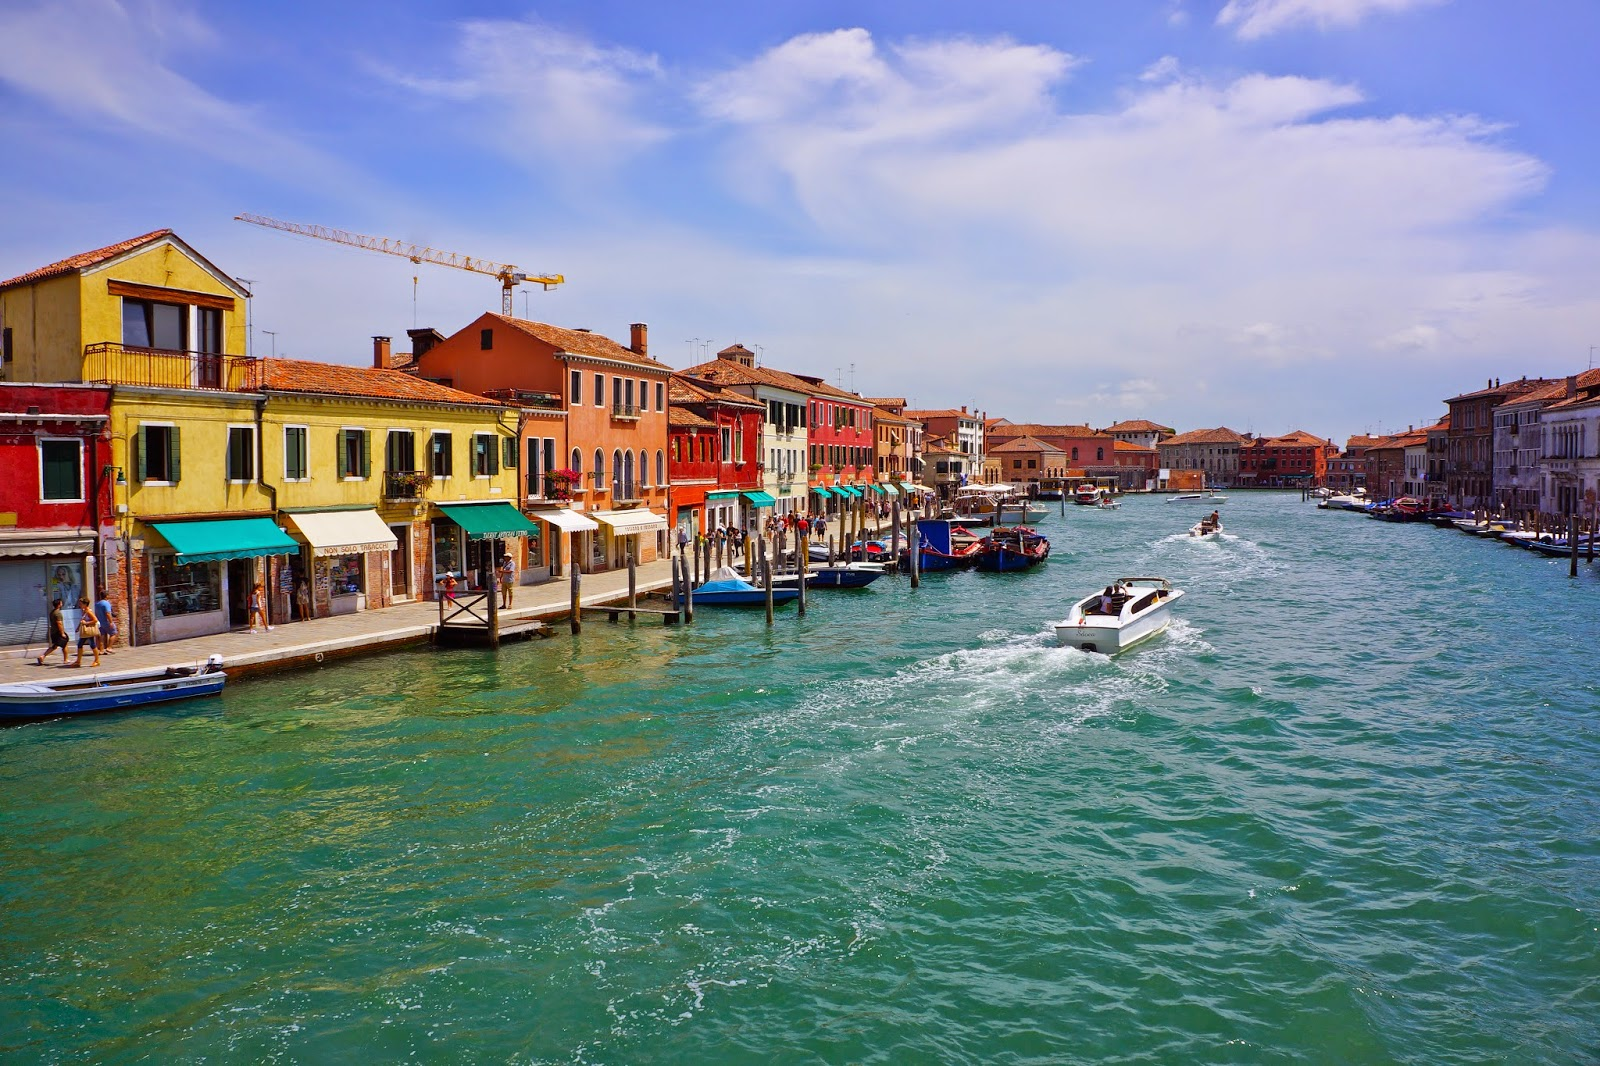 Colorful houses along the canal in Murano, Venice, Italy.